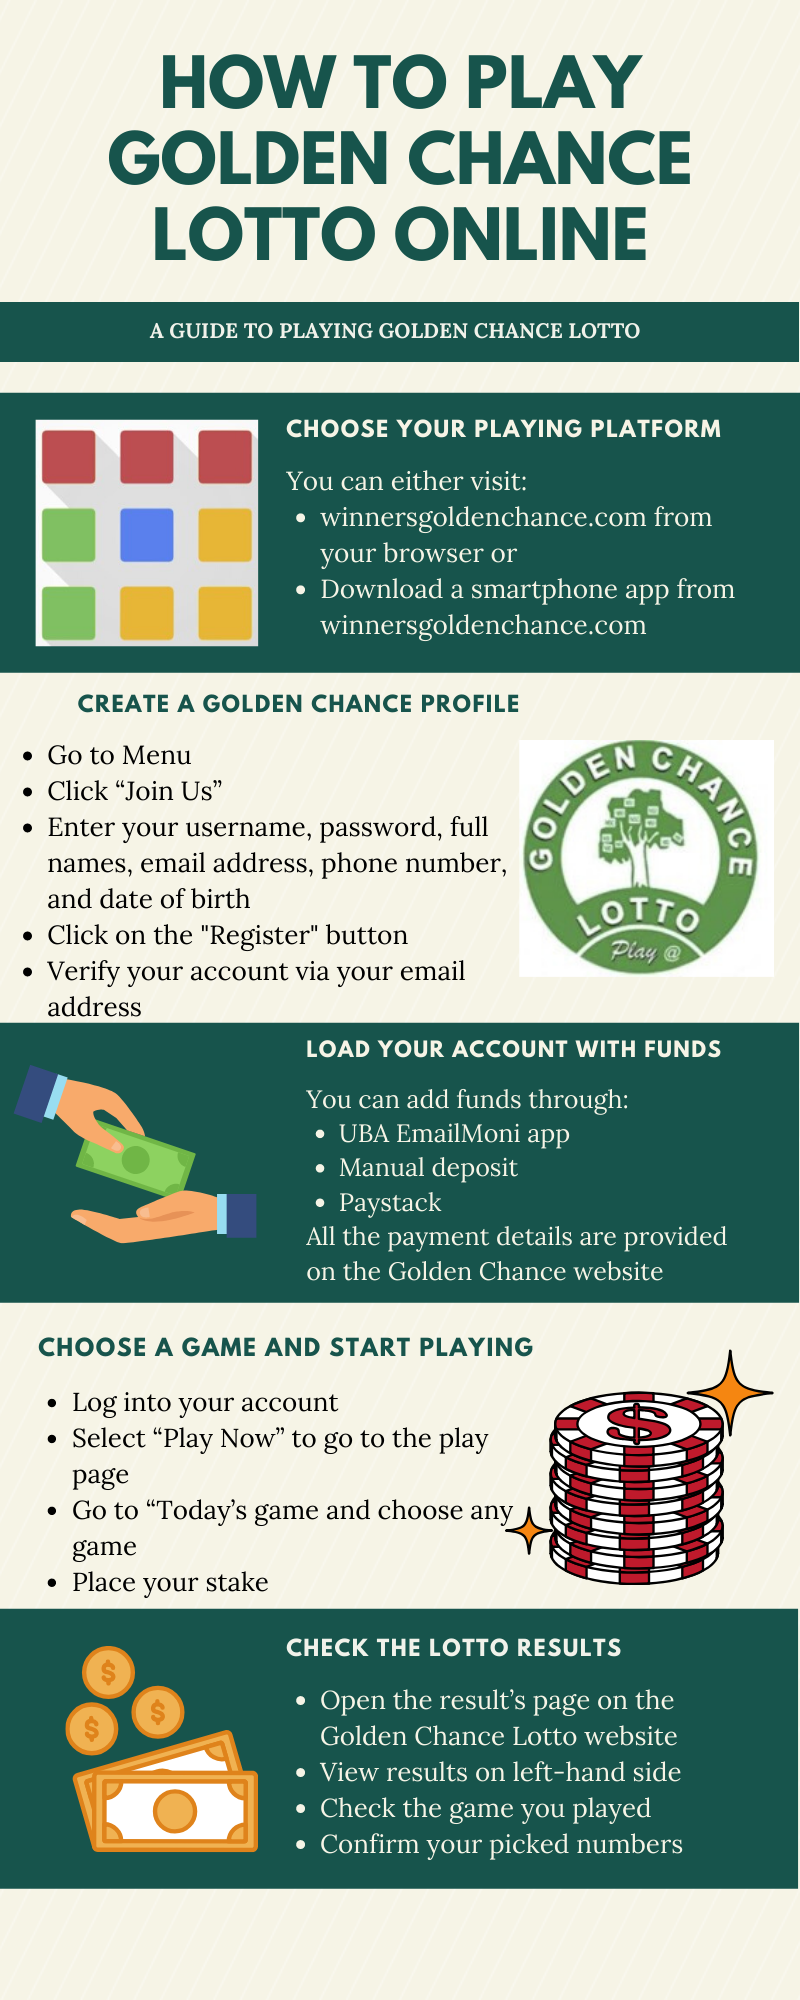 How To Play Golden Chance Lotto Online And Check The Results